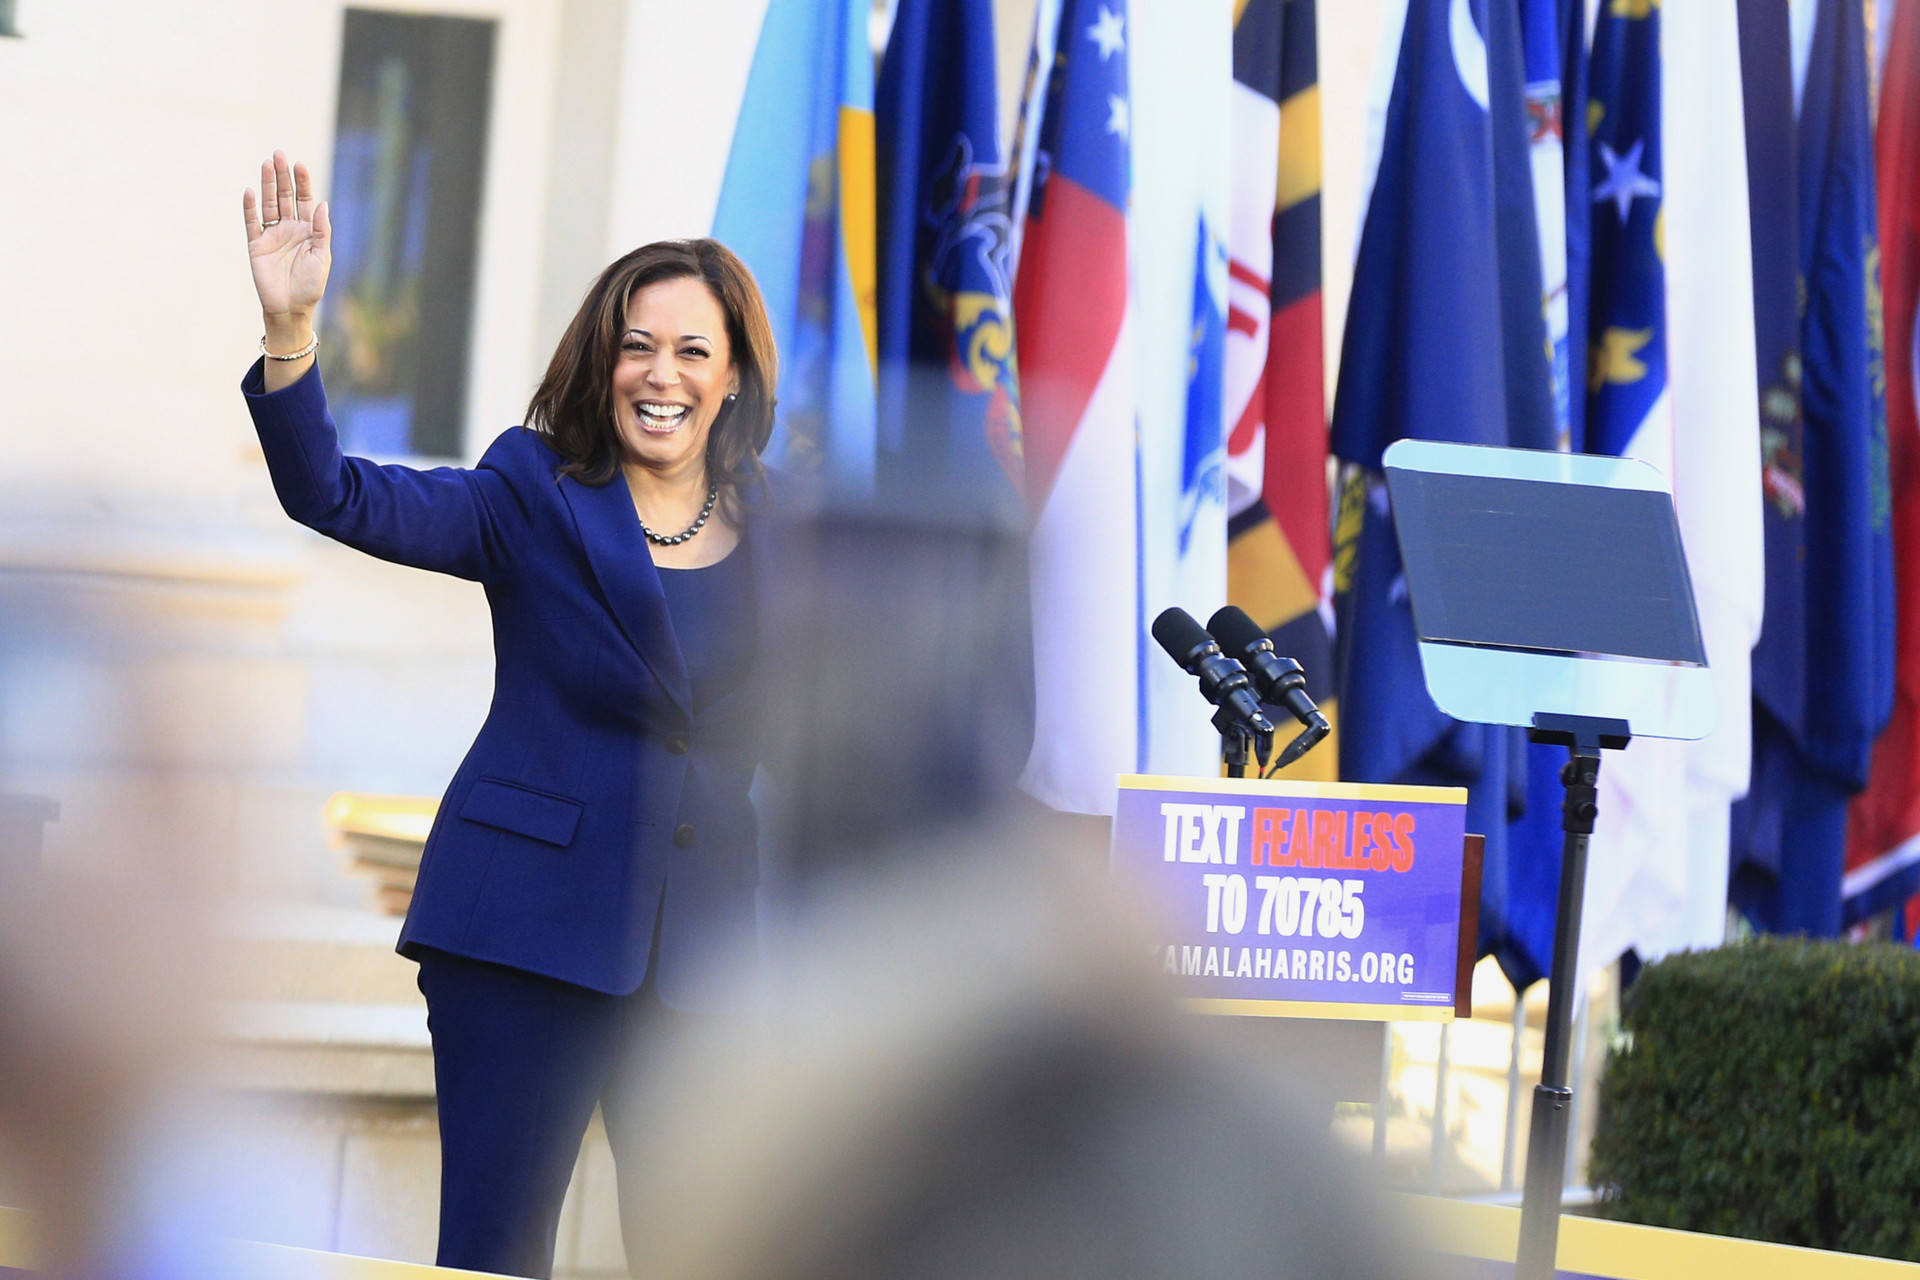 Sen. Kamala Harris formally launched her 2020 presidential campaign at a rally at Frank Ogawa Plaza in Oakland on Jan. 27, 2019. Stephanie Lister/KQED